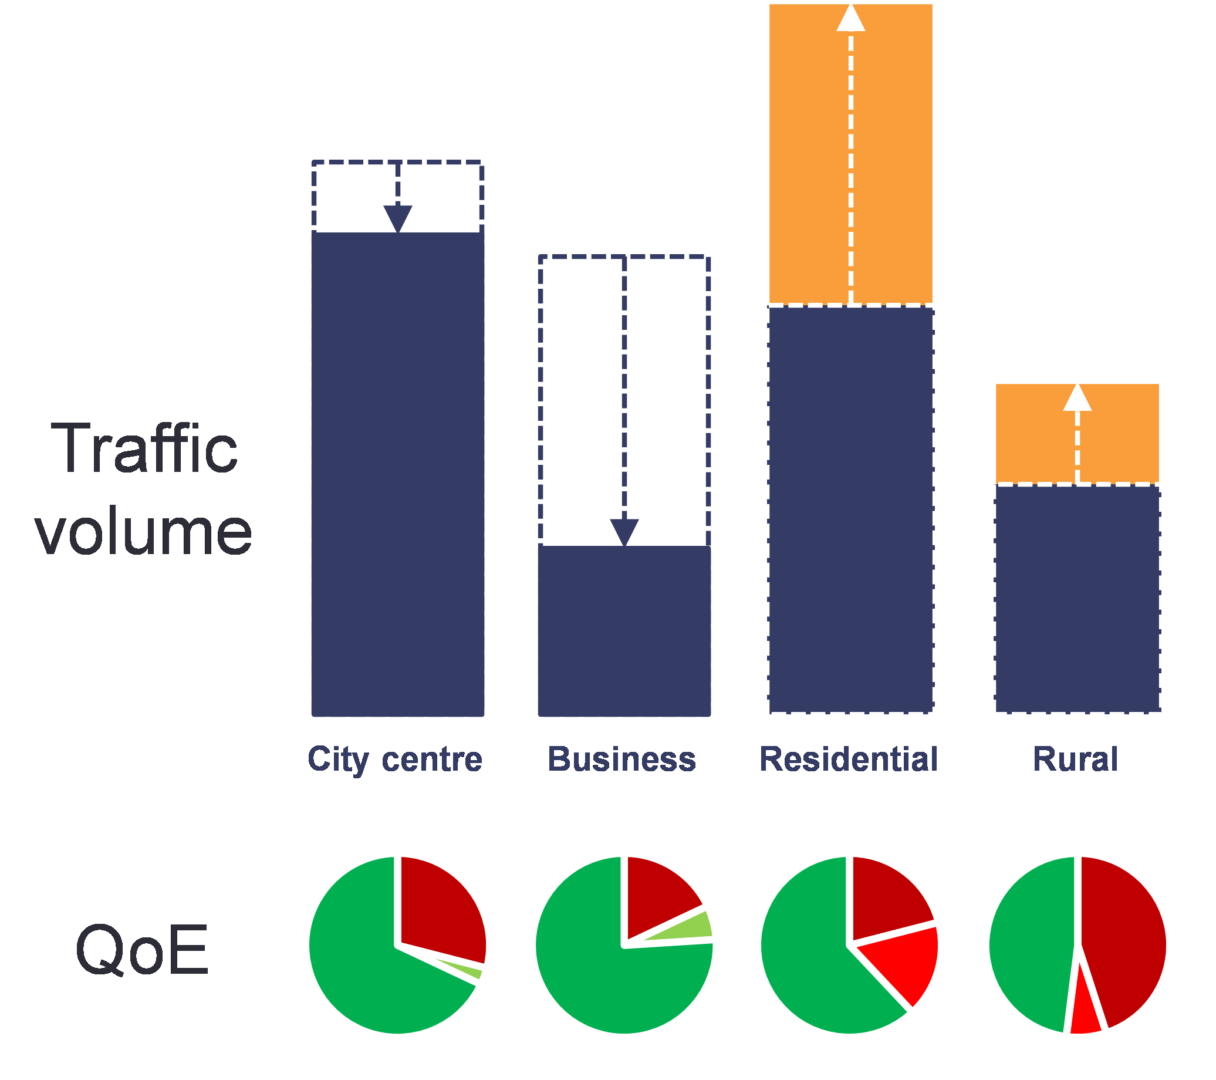 Network performance shift from business to residential areas. Traffic volume